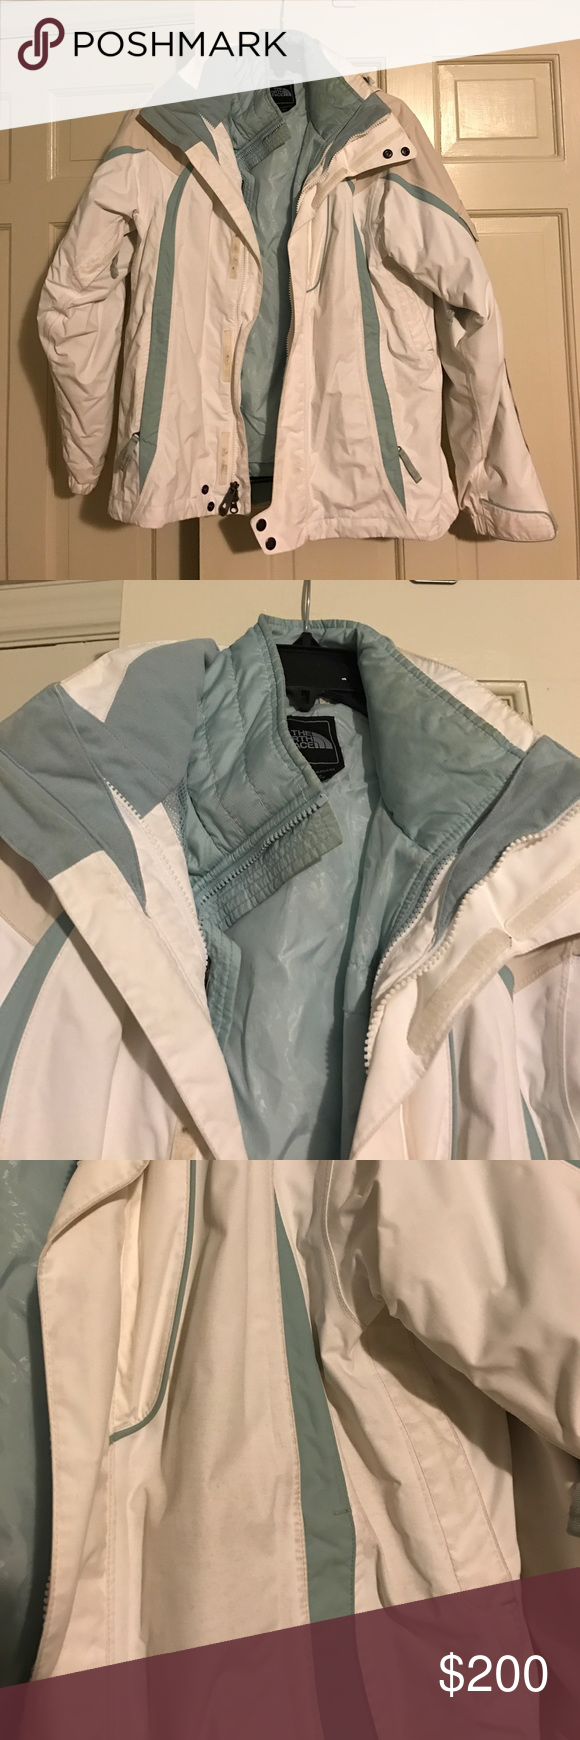 North Face ski jacket Elastic waist. Inner shell. Detachable hood. Matching  hat and ski pants also available. Excellent condition just needs a good dry  ... 6bafd9d00